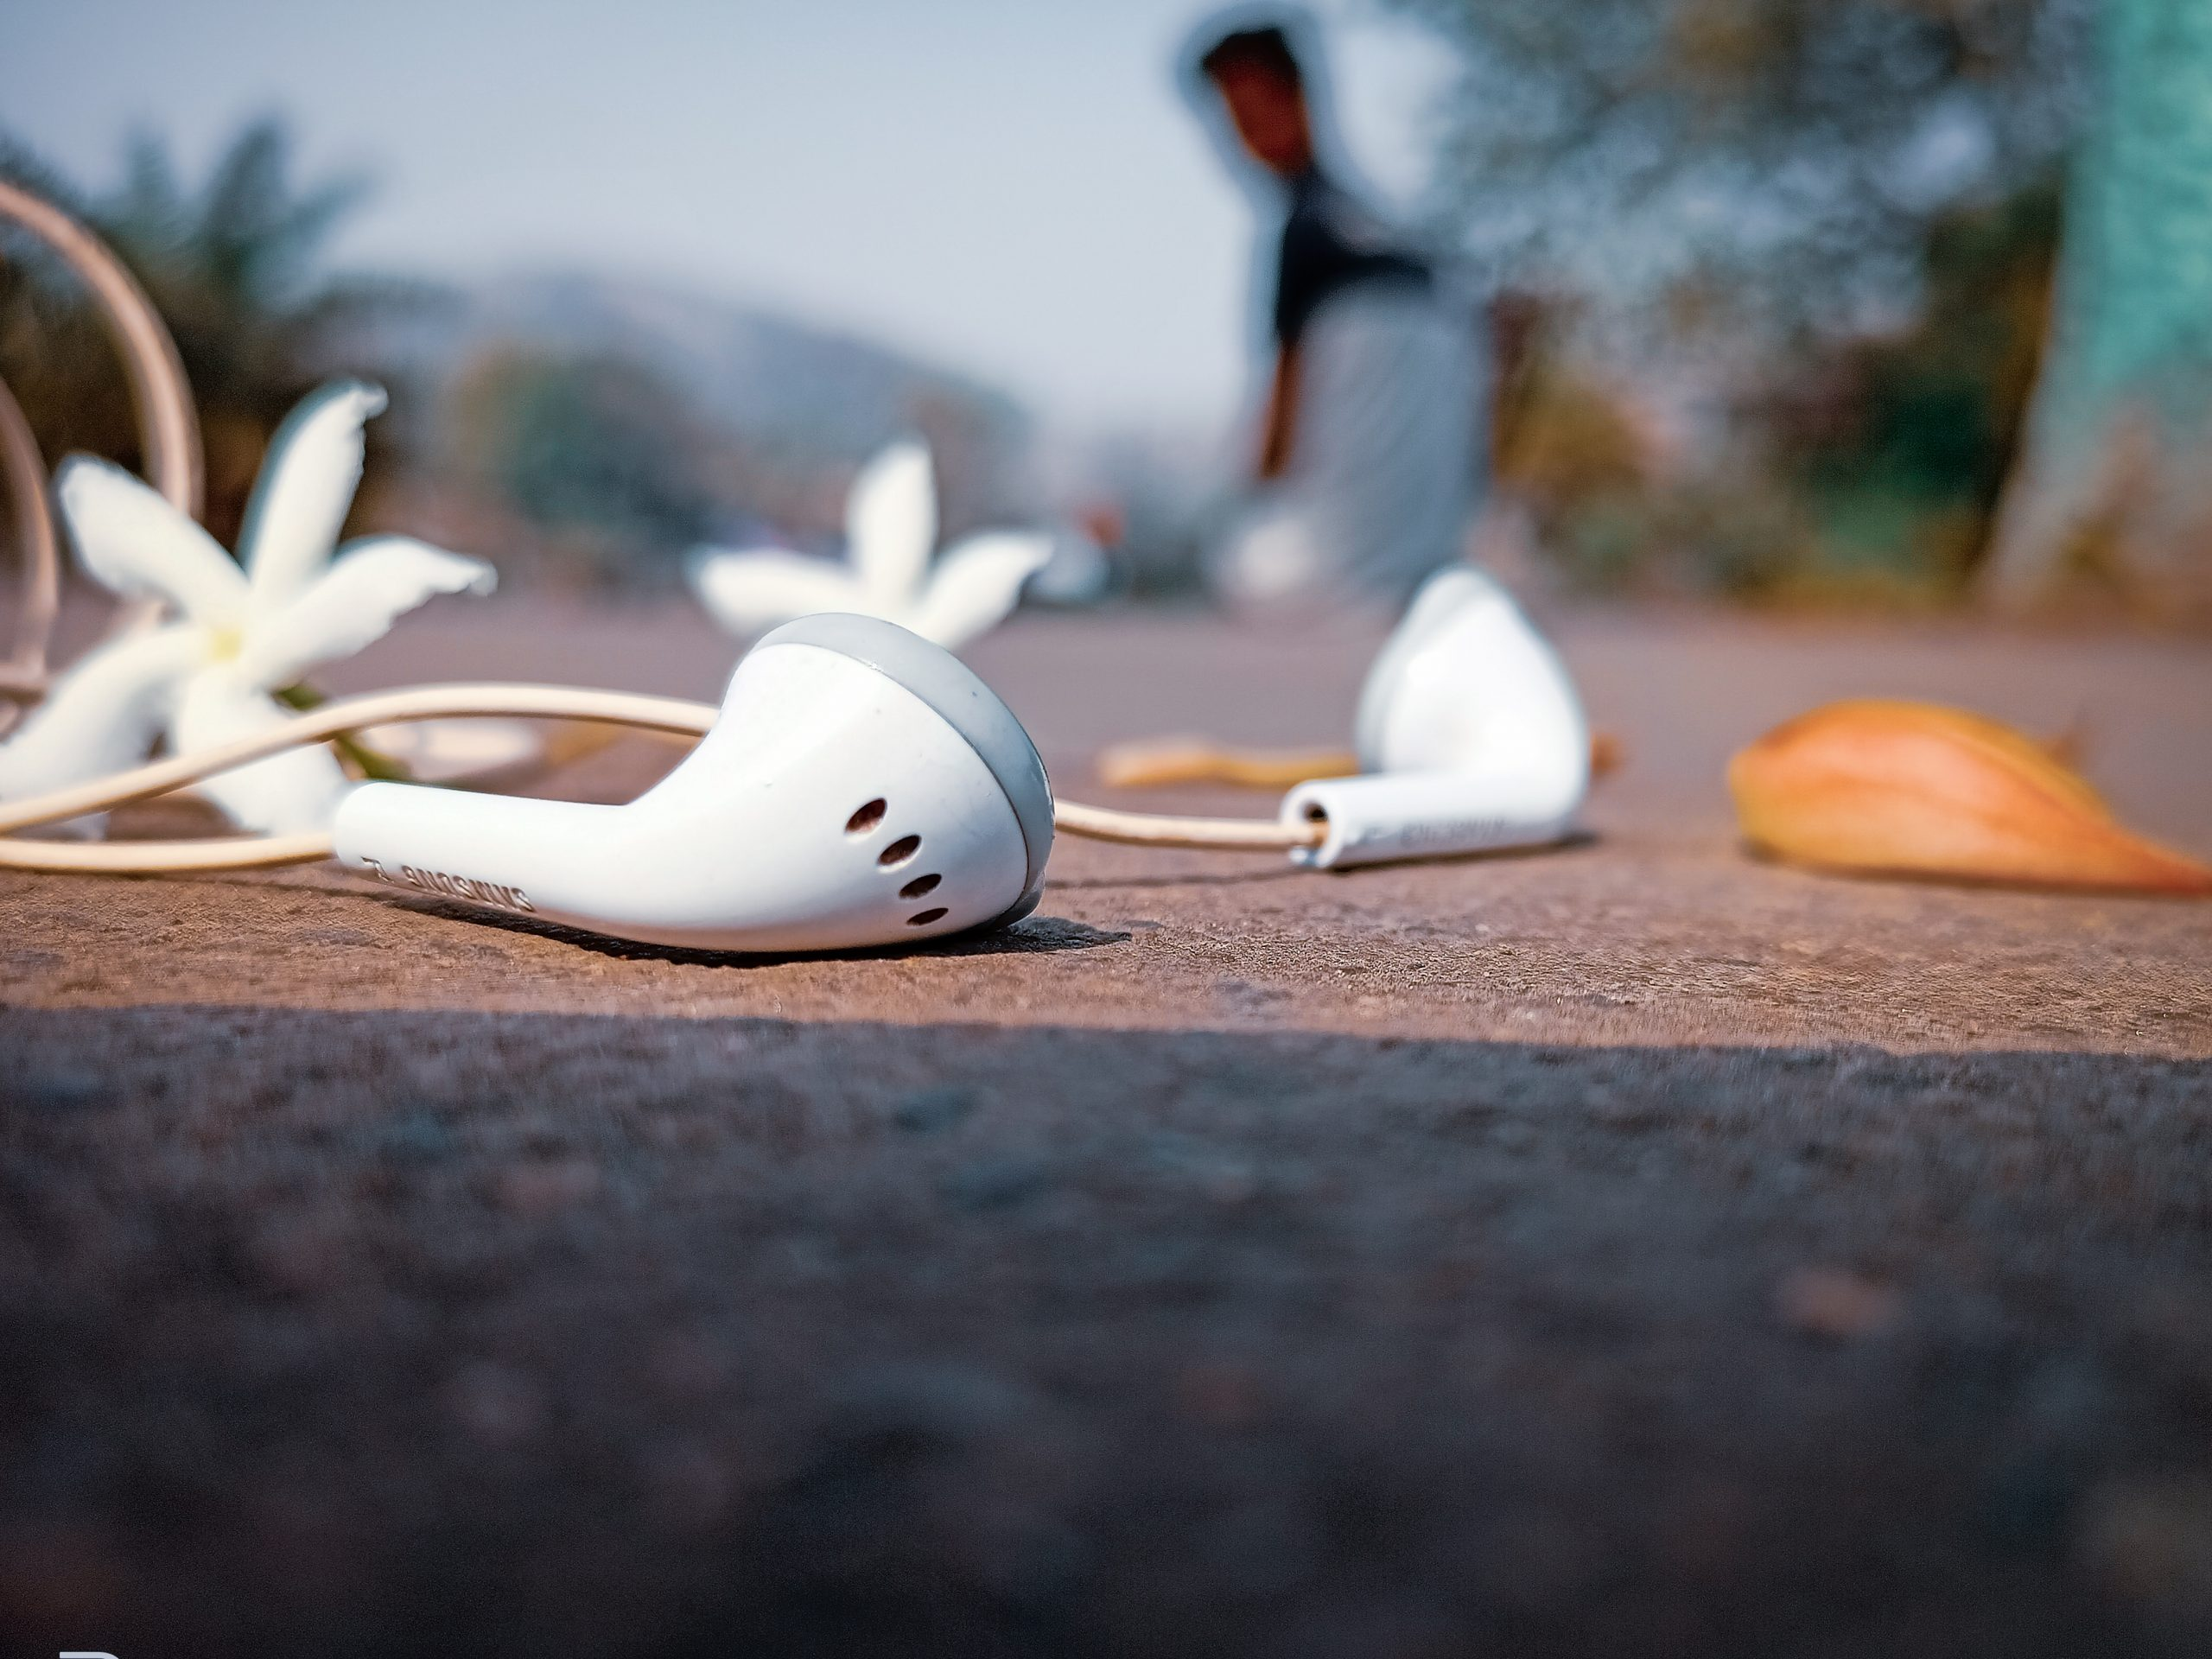 Earphone on the road